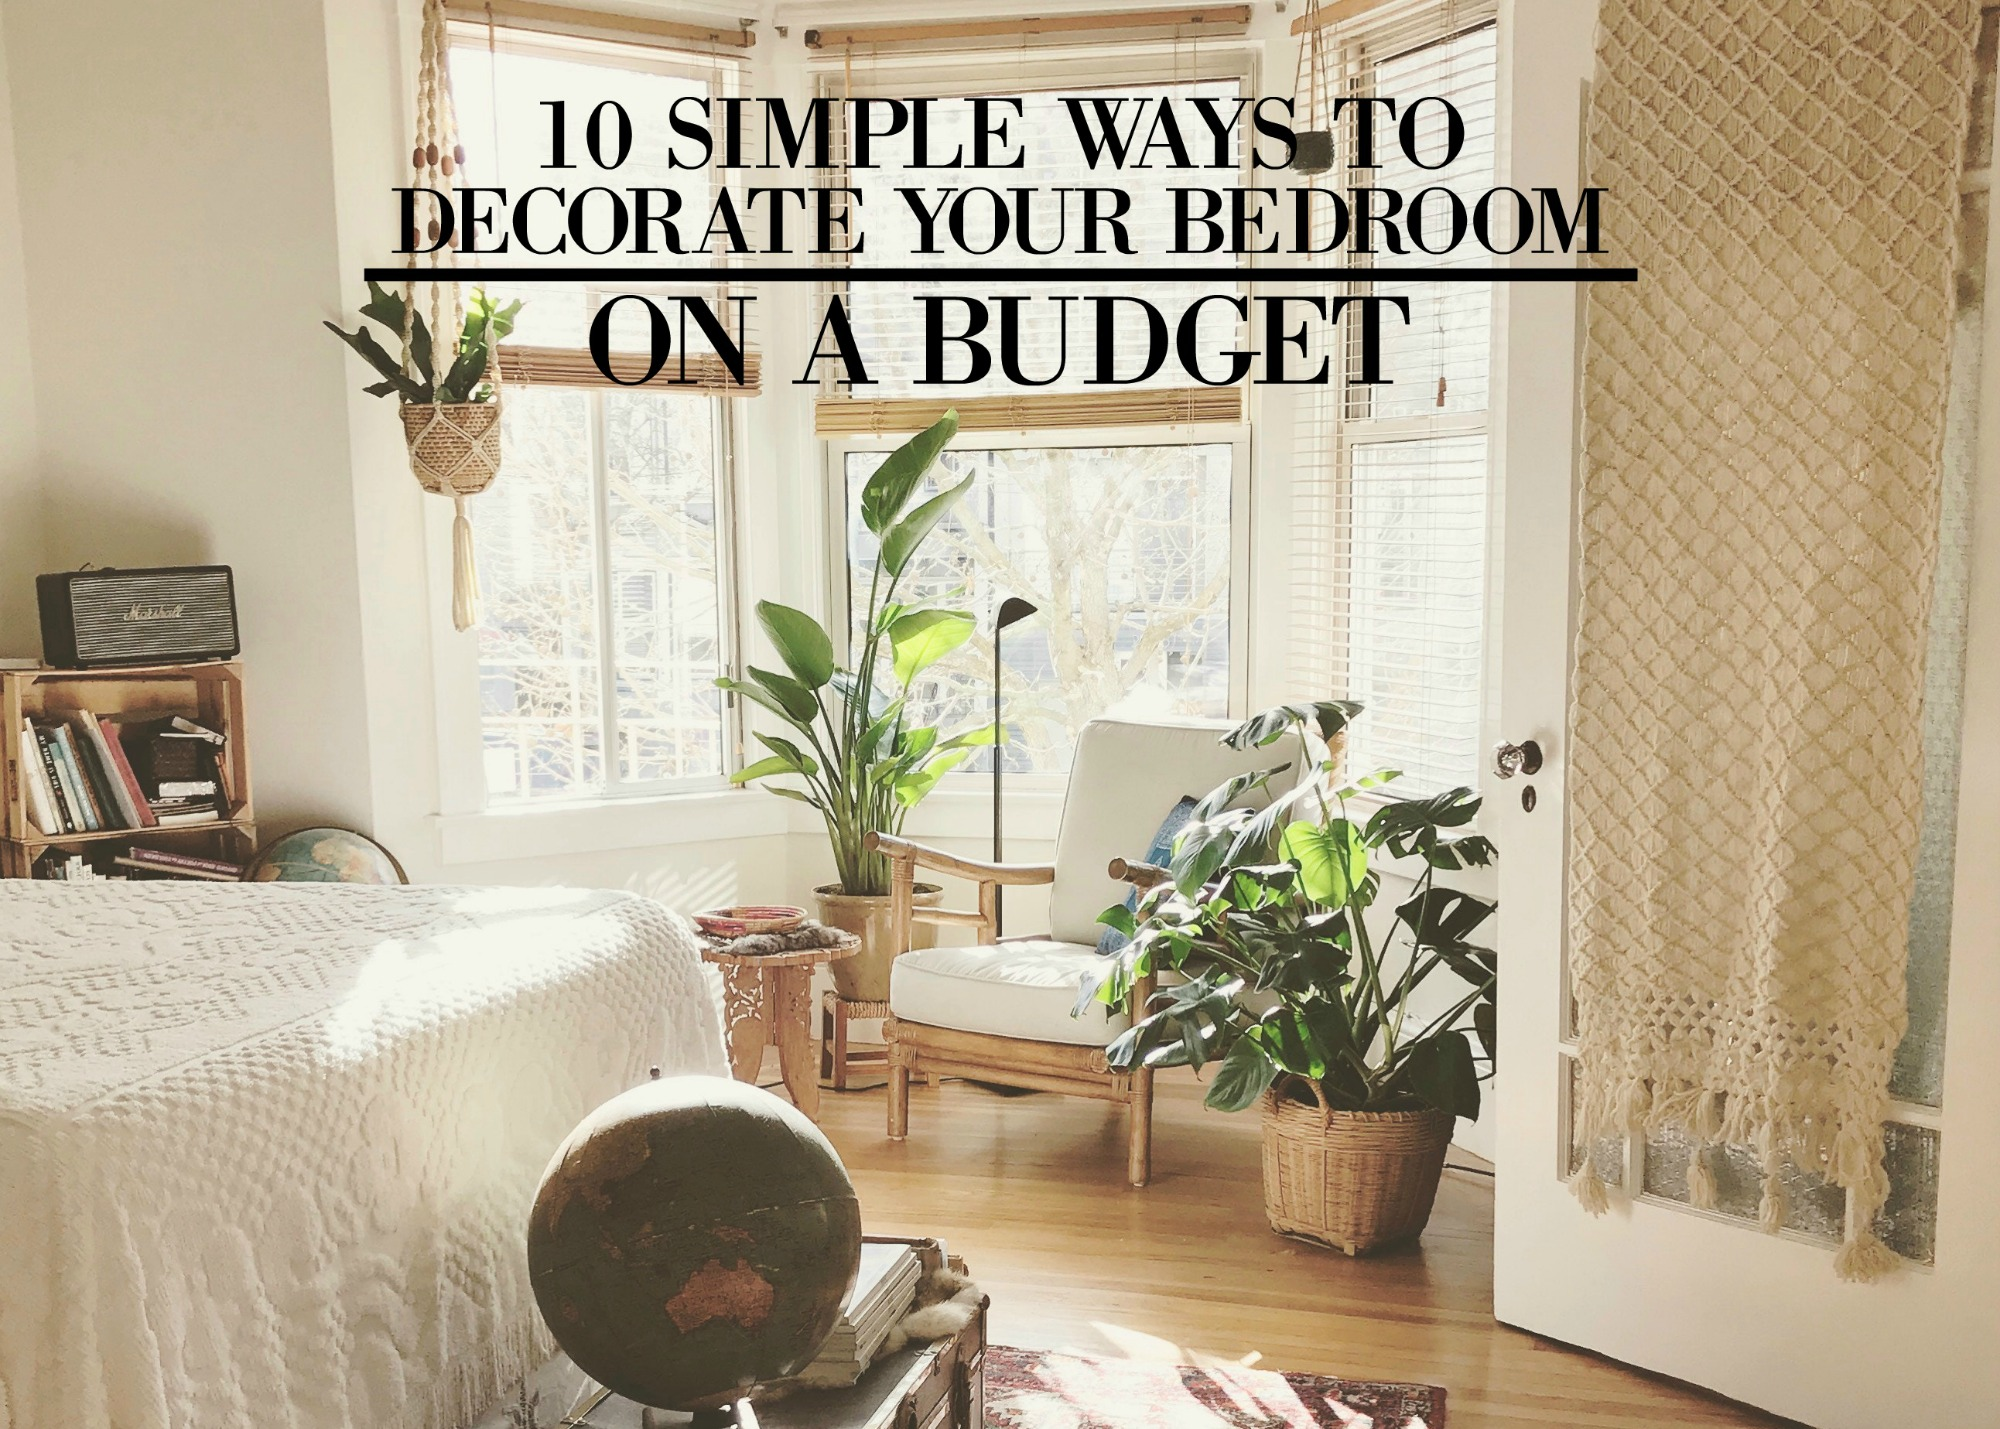 How To Decorate A Room On A Budget: 10 Simple Ways To Decorate Your Bedroom On A Budget